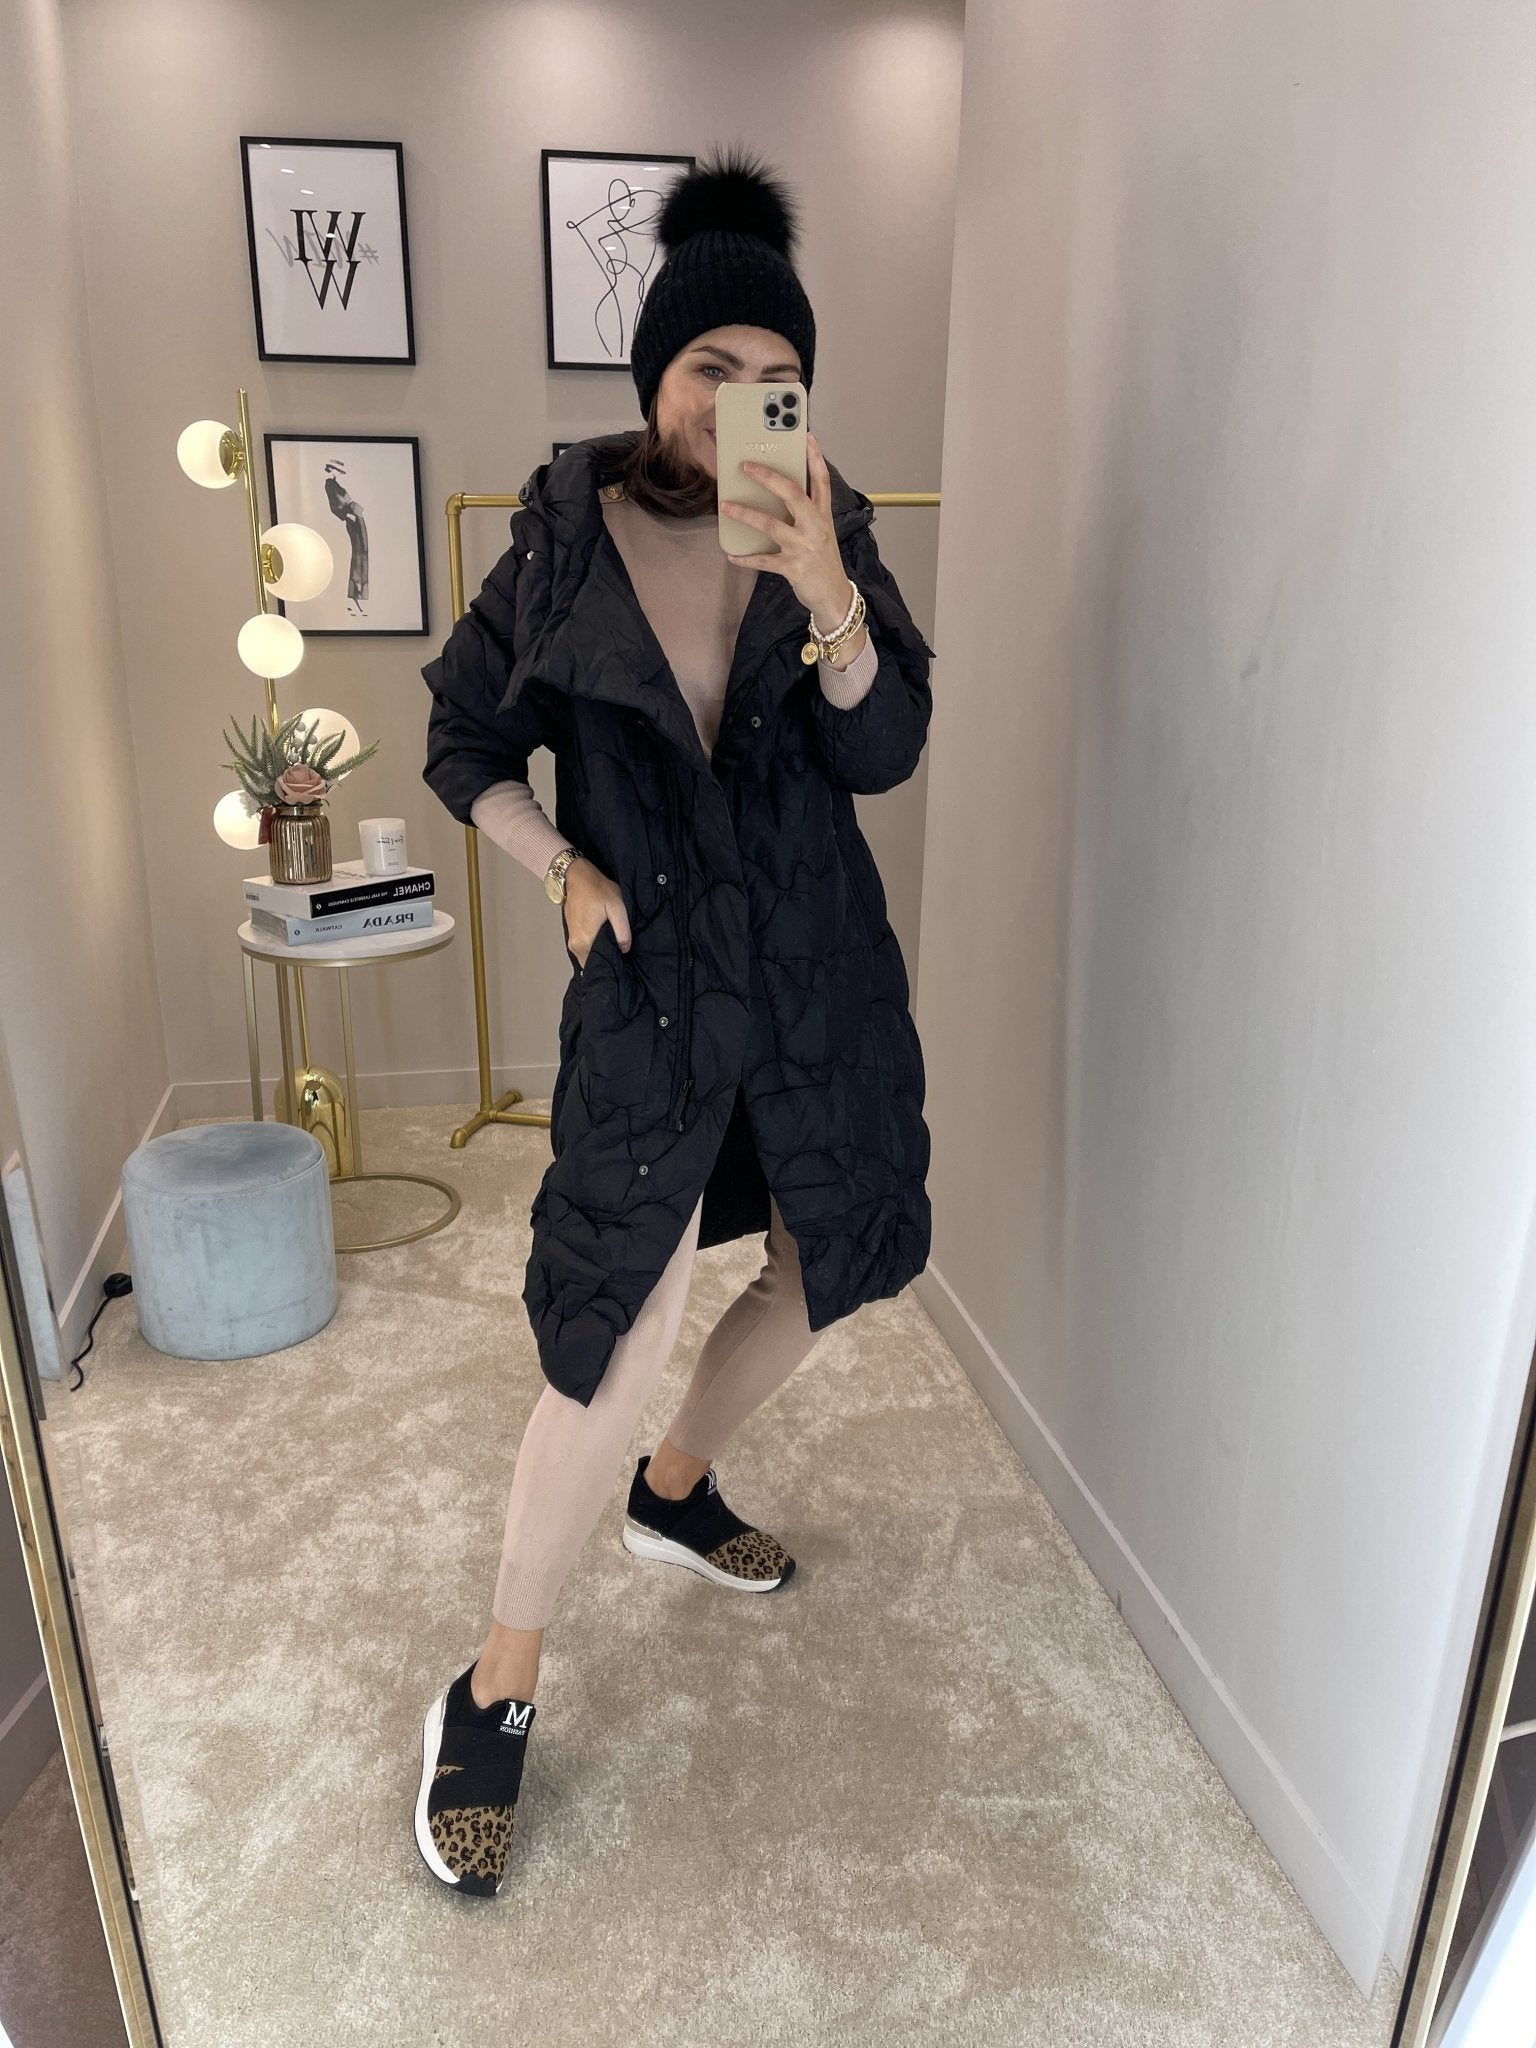 Alba Oversized Quilted Coat In Black - The Walk in Wardrobe